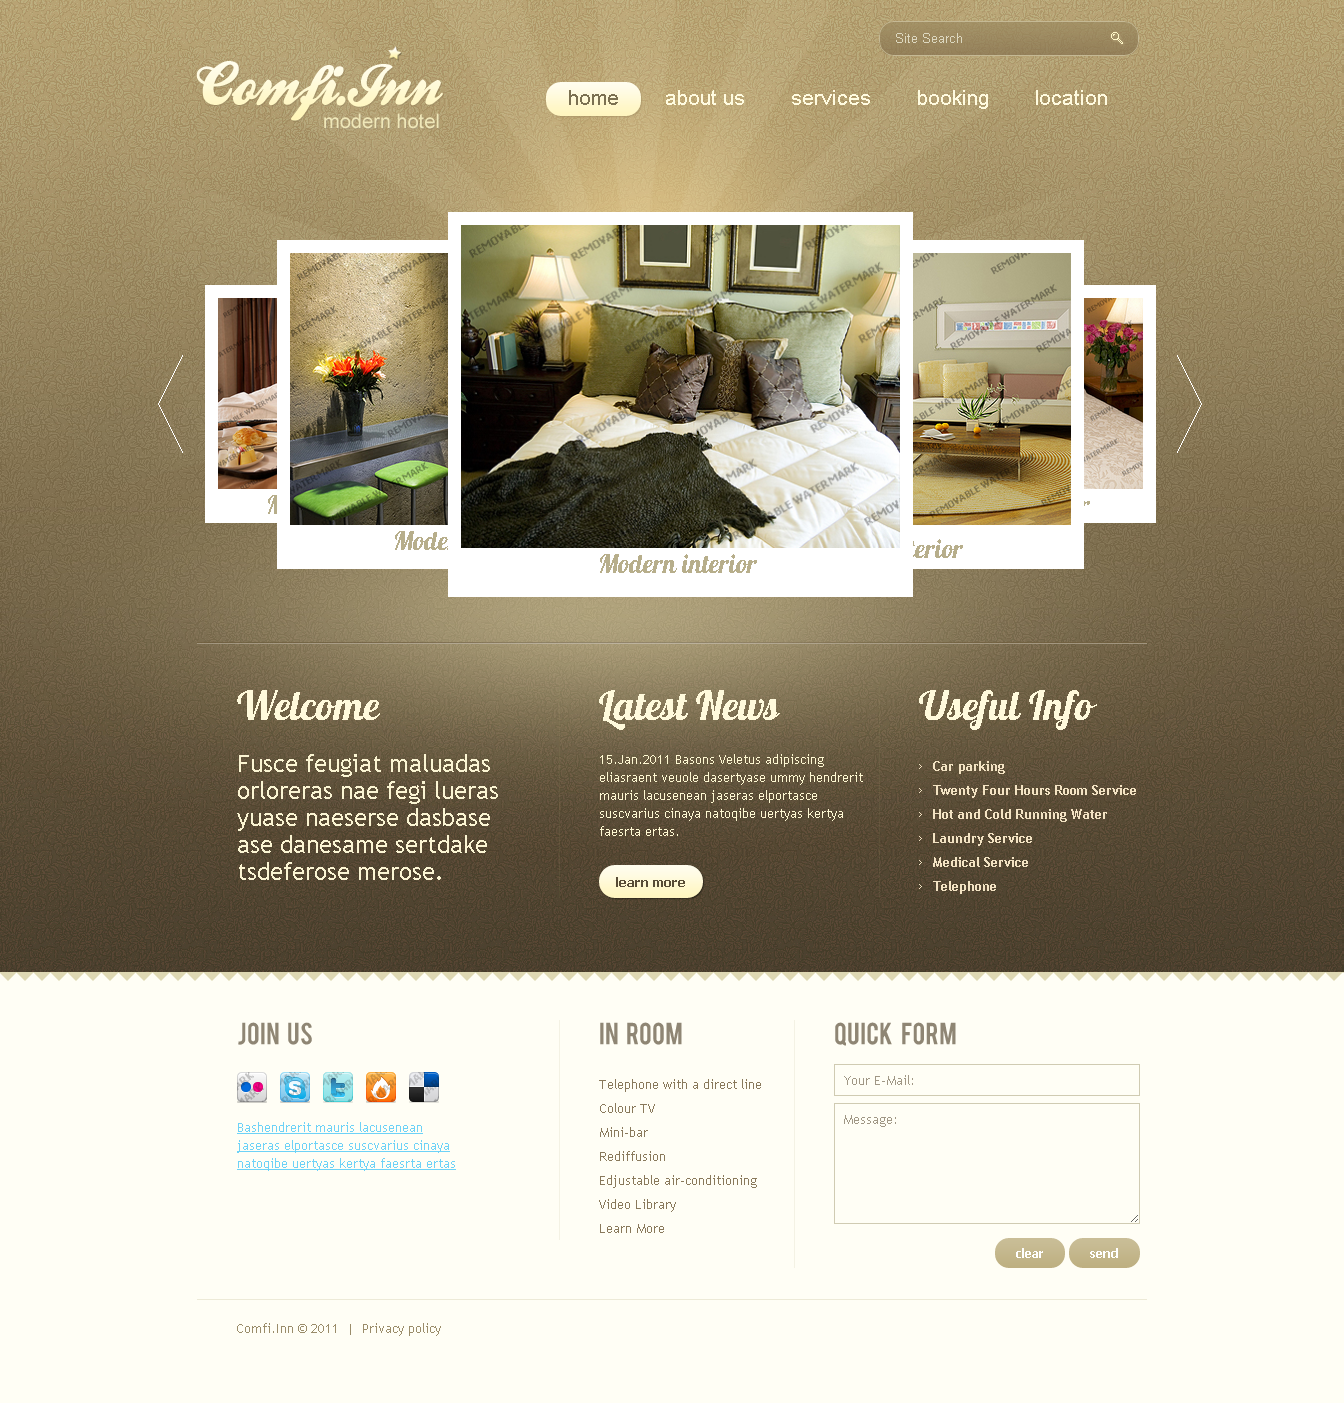 Homepage Web Design Tips: Motel-accommodation-hotel-web-design-idea-05.png 1,344